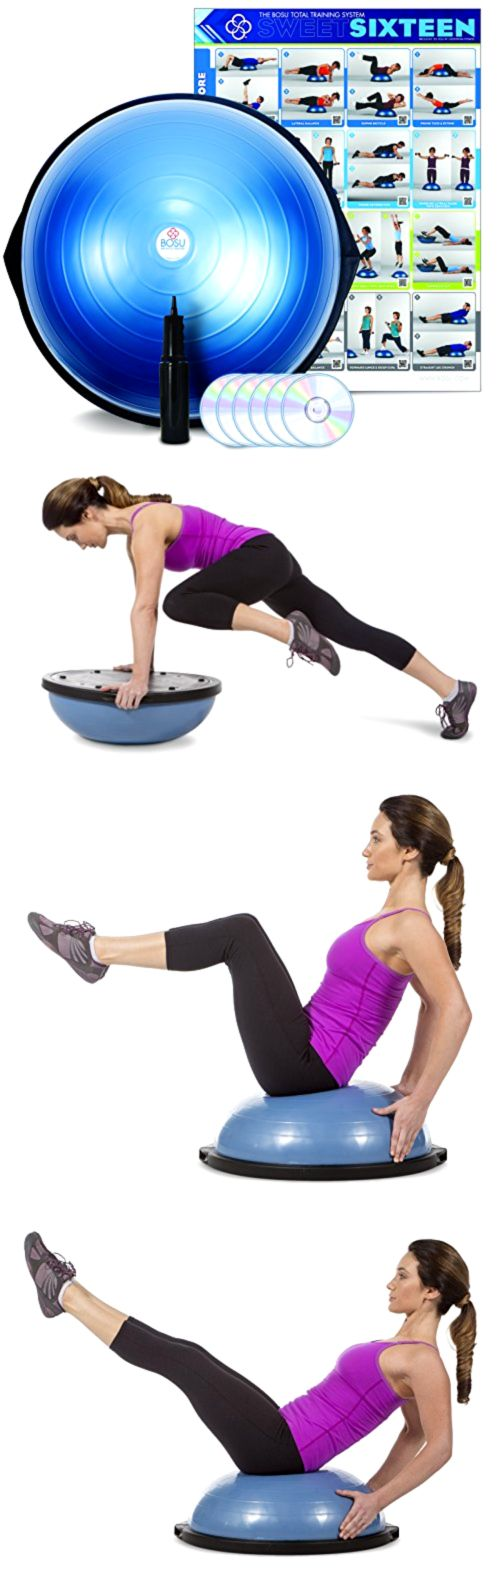 Balance Trainers 179803: Bosu Ball Pro Balance Trainer Exercise Ball Commercial Professional Gym Unit Fun -> BUY IT NOW ONLY: $108.22 on eBay!